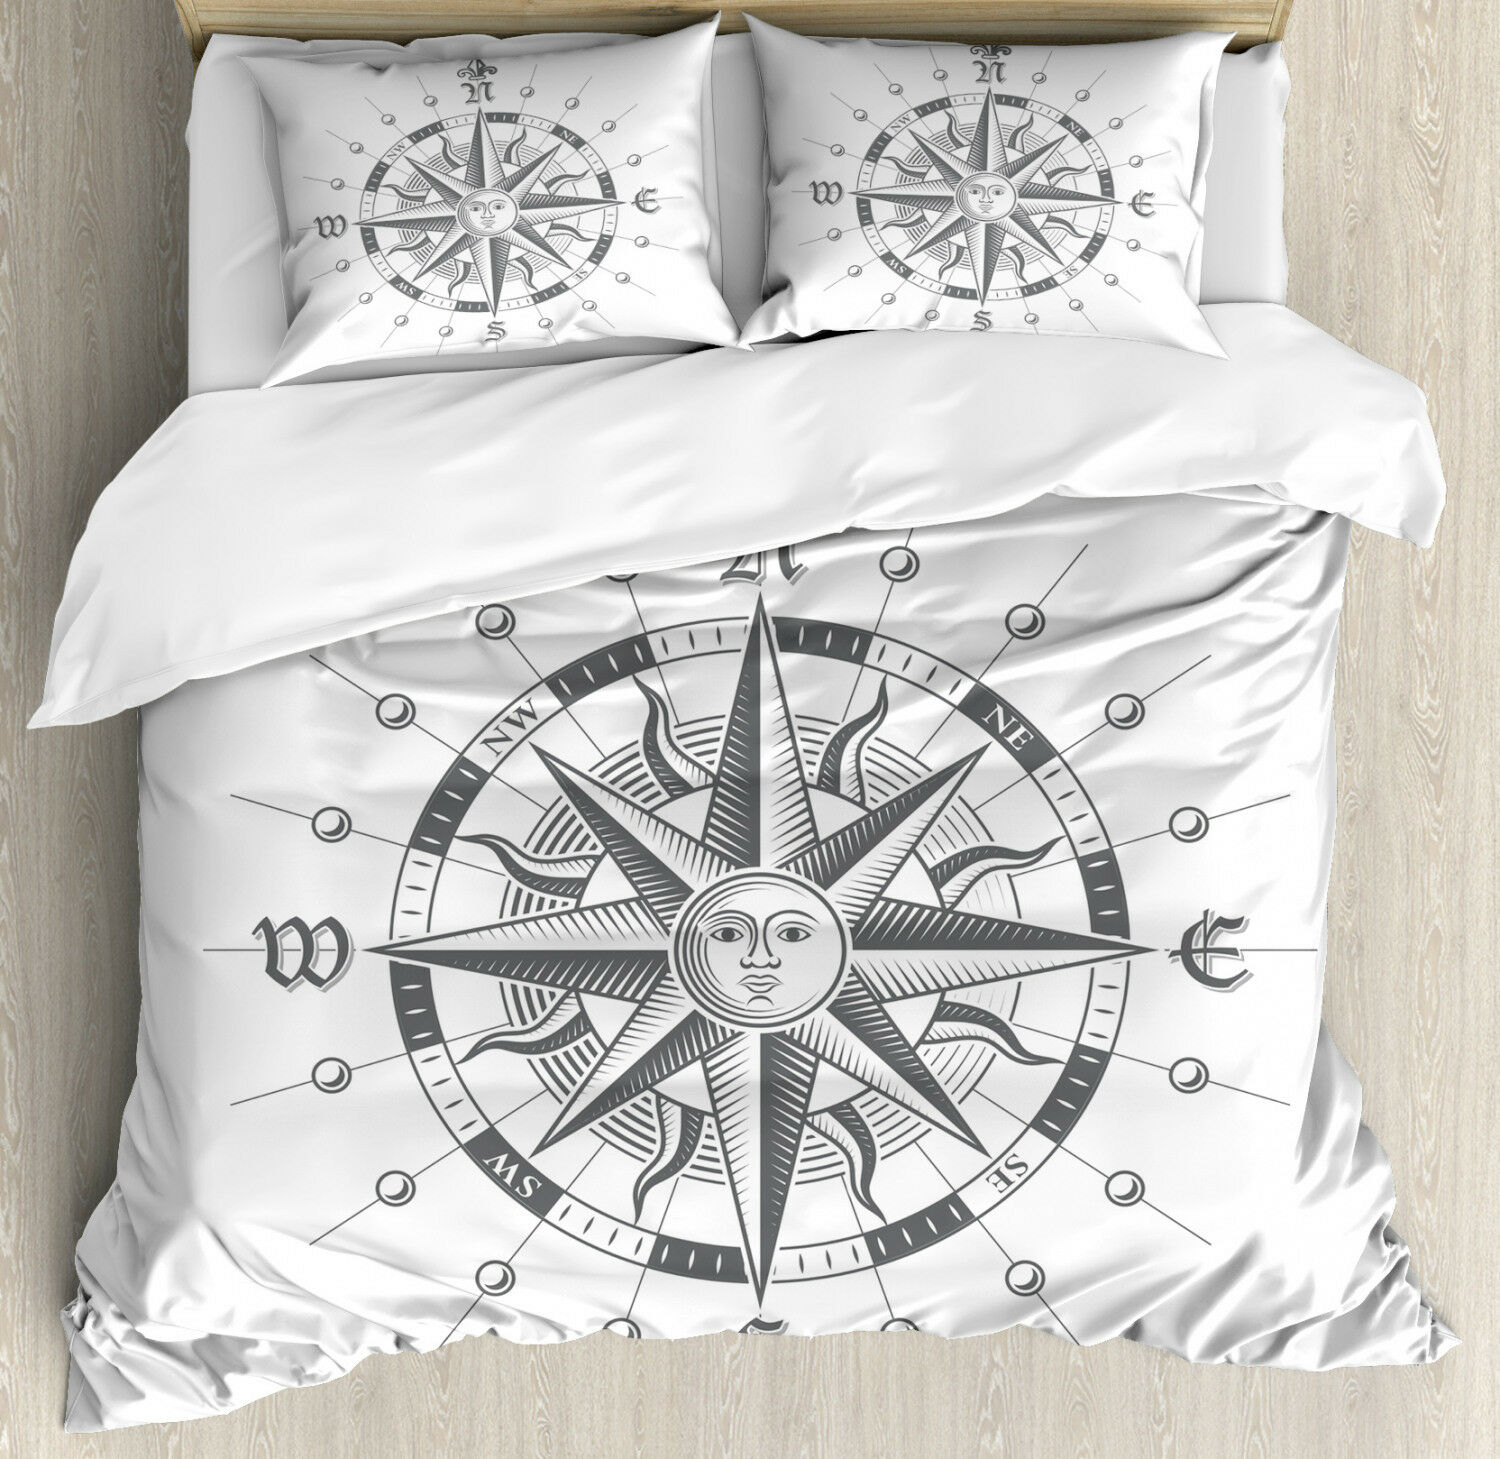 Compass Duvet Cover Set with Pillow Shams Old Paper Ancient Ship Print